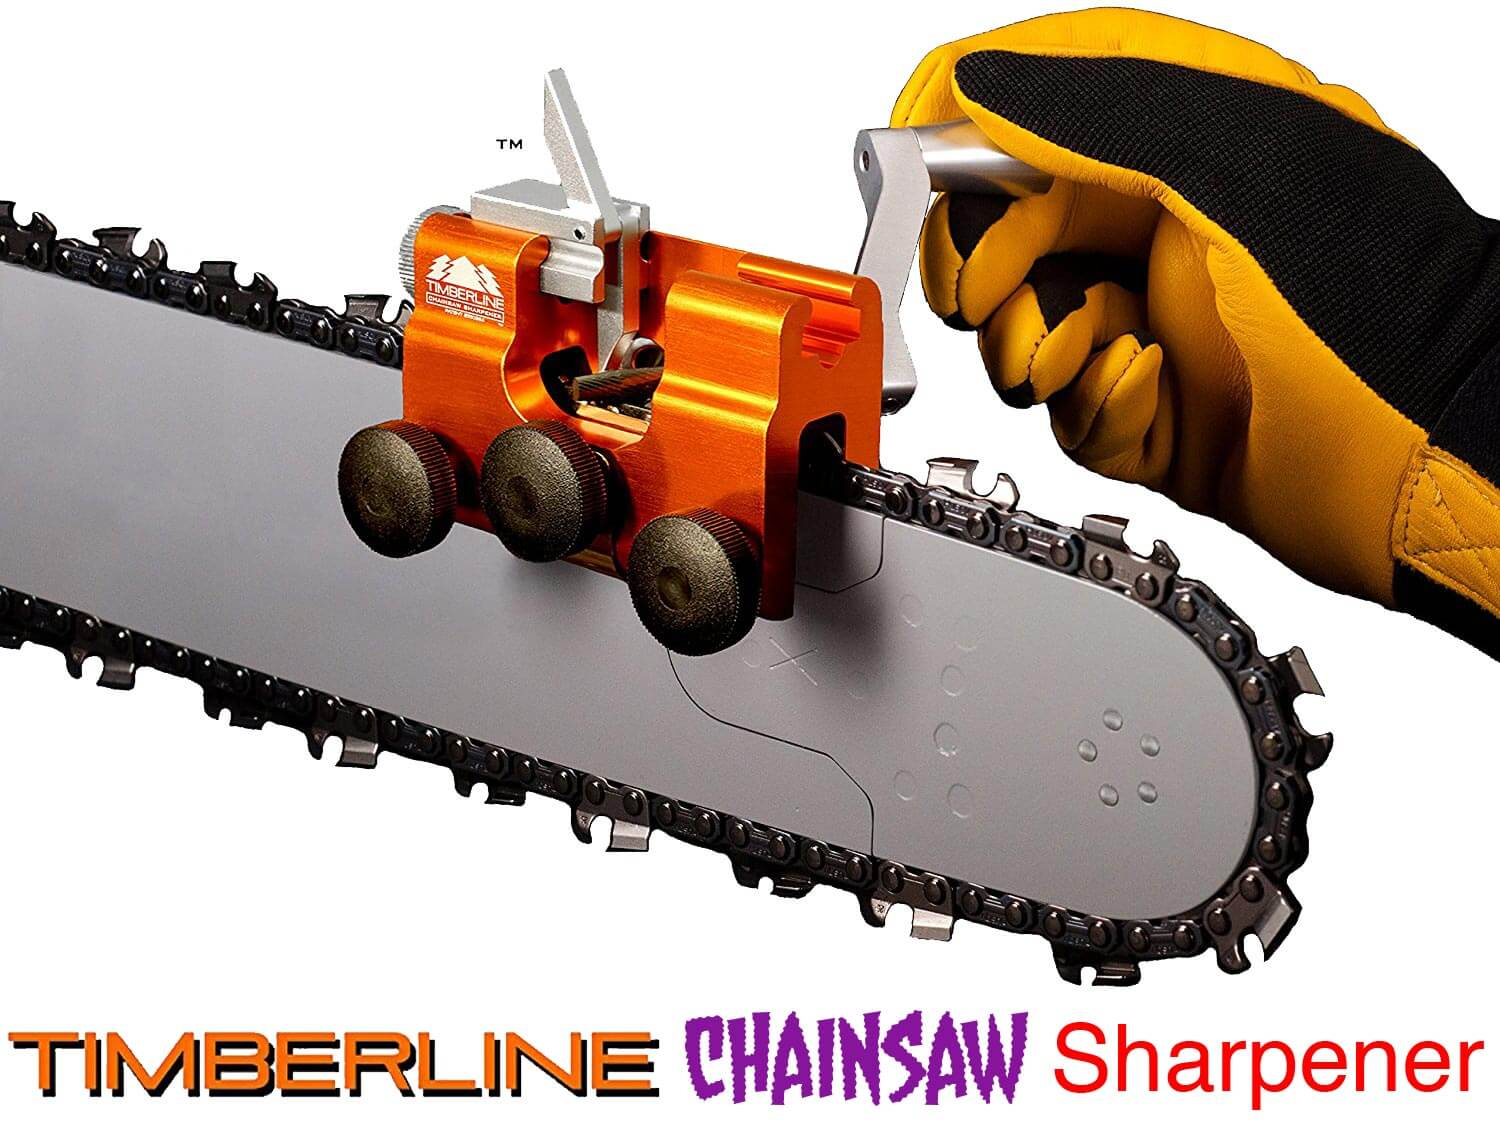 Timberline Chainsaw Sharpener